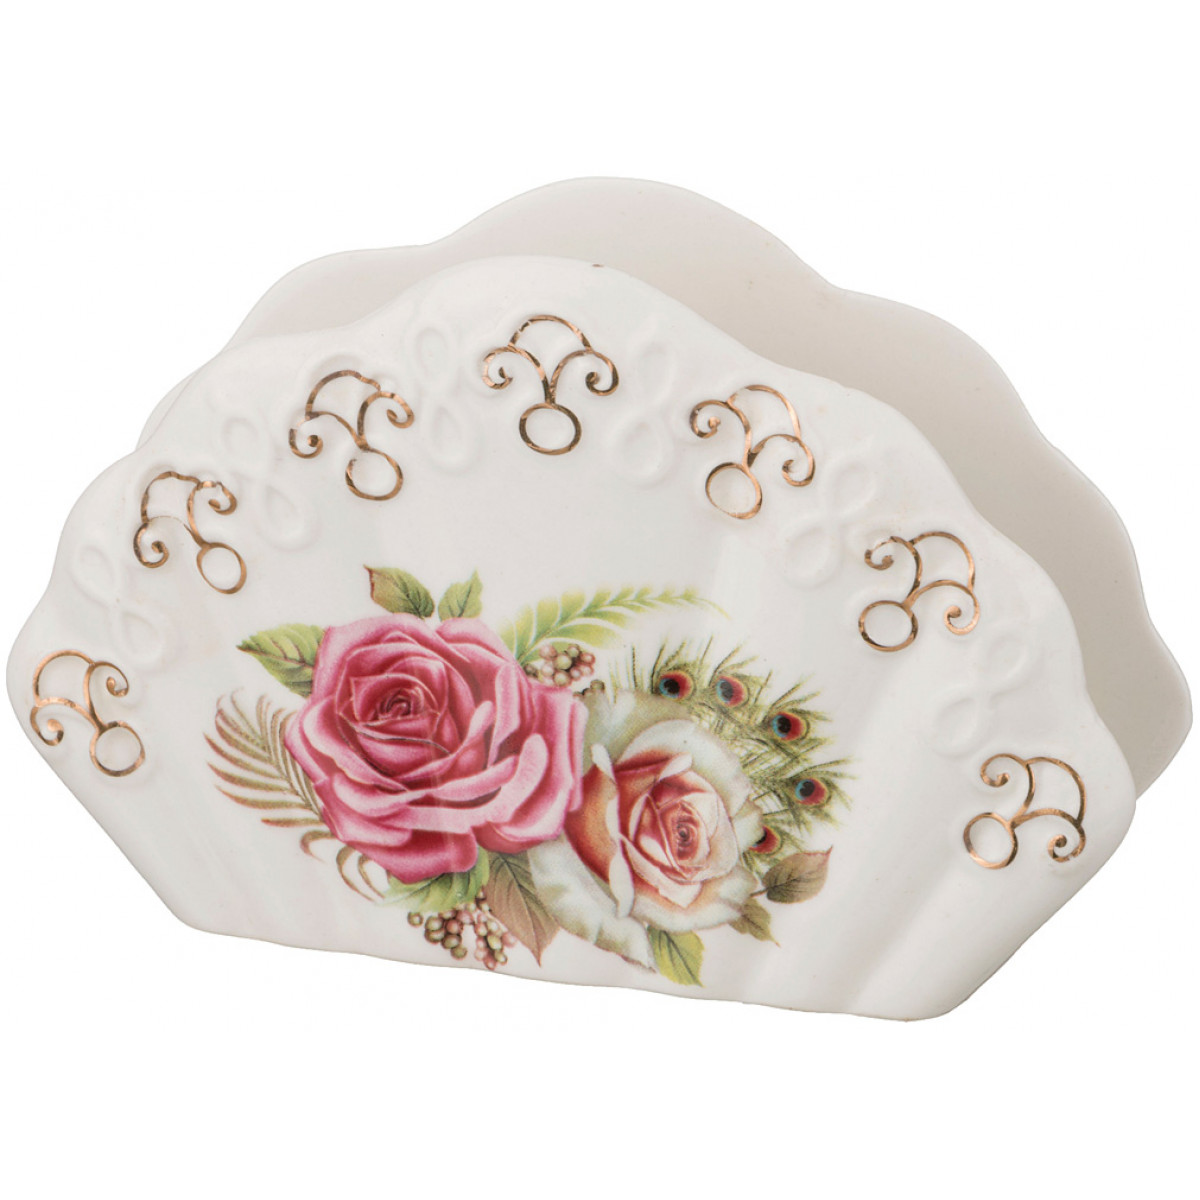 {} Royal Porcelain Сервиз Payton (3х9х14 см) royal view place 3 паттайя